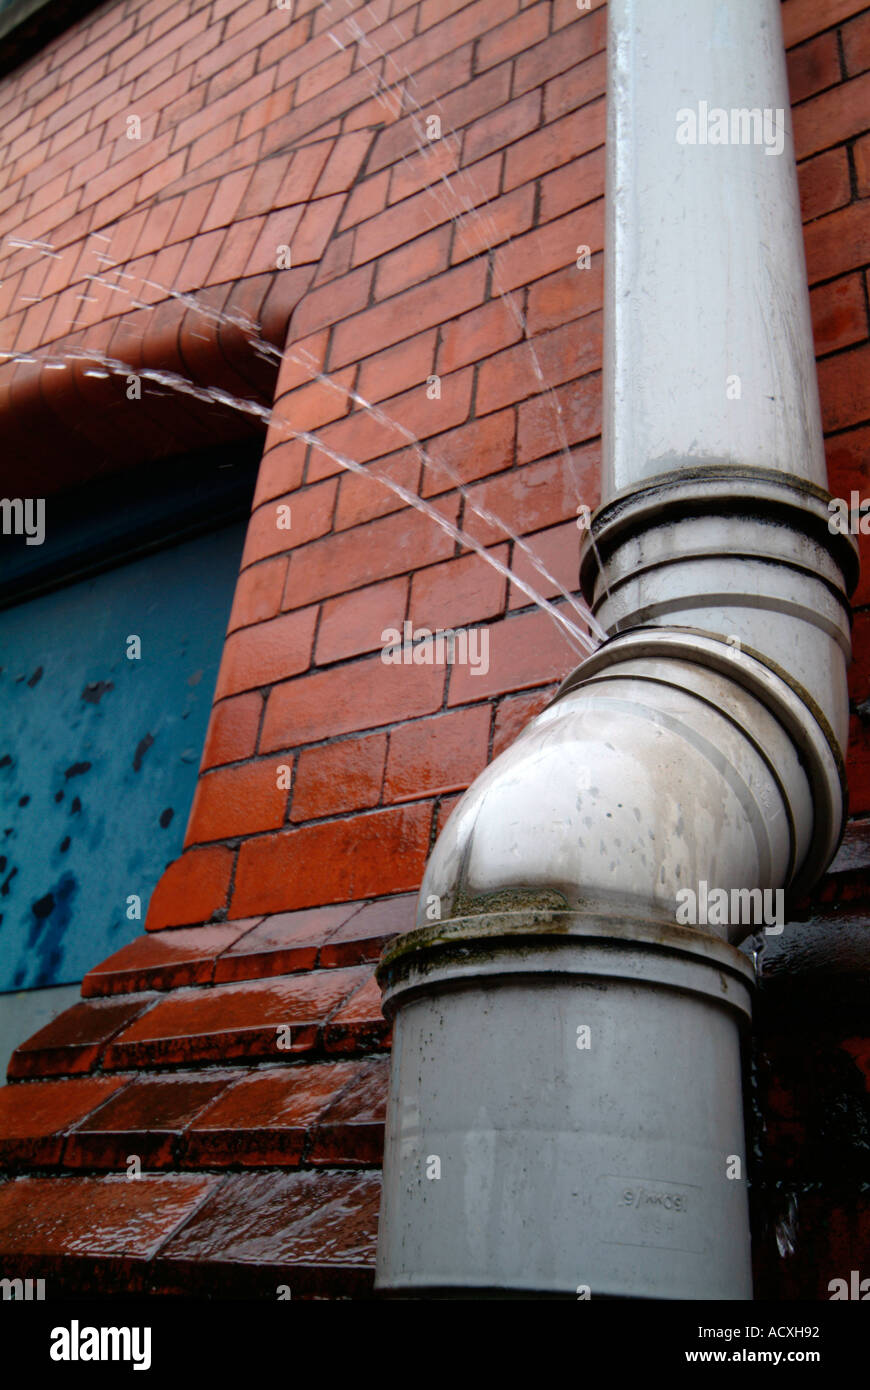 leaking drain pipe Stock Photo, Royalty Free Image: 4323729 - Alamy